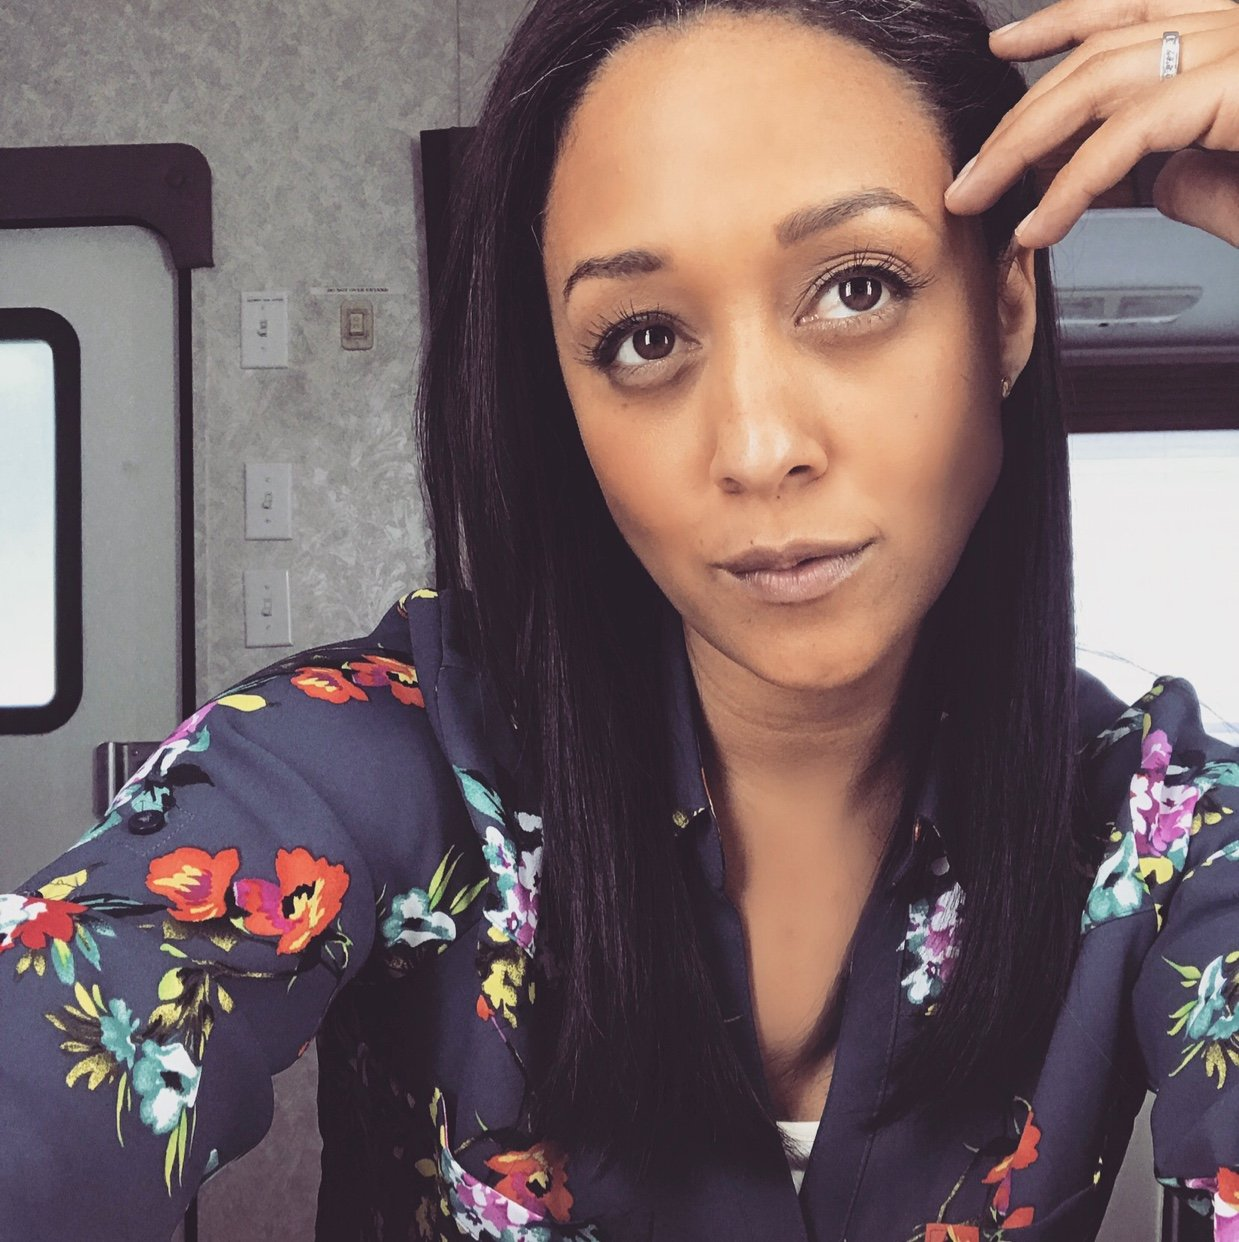 Learn more about Tia Mowry